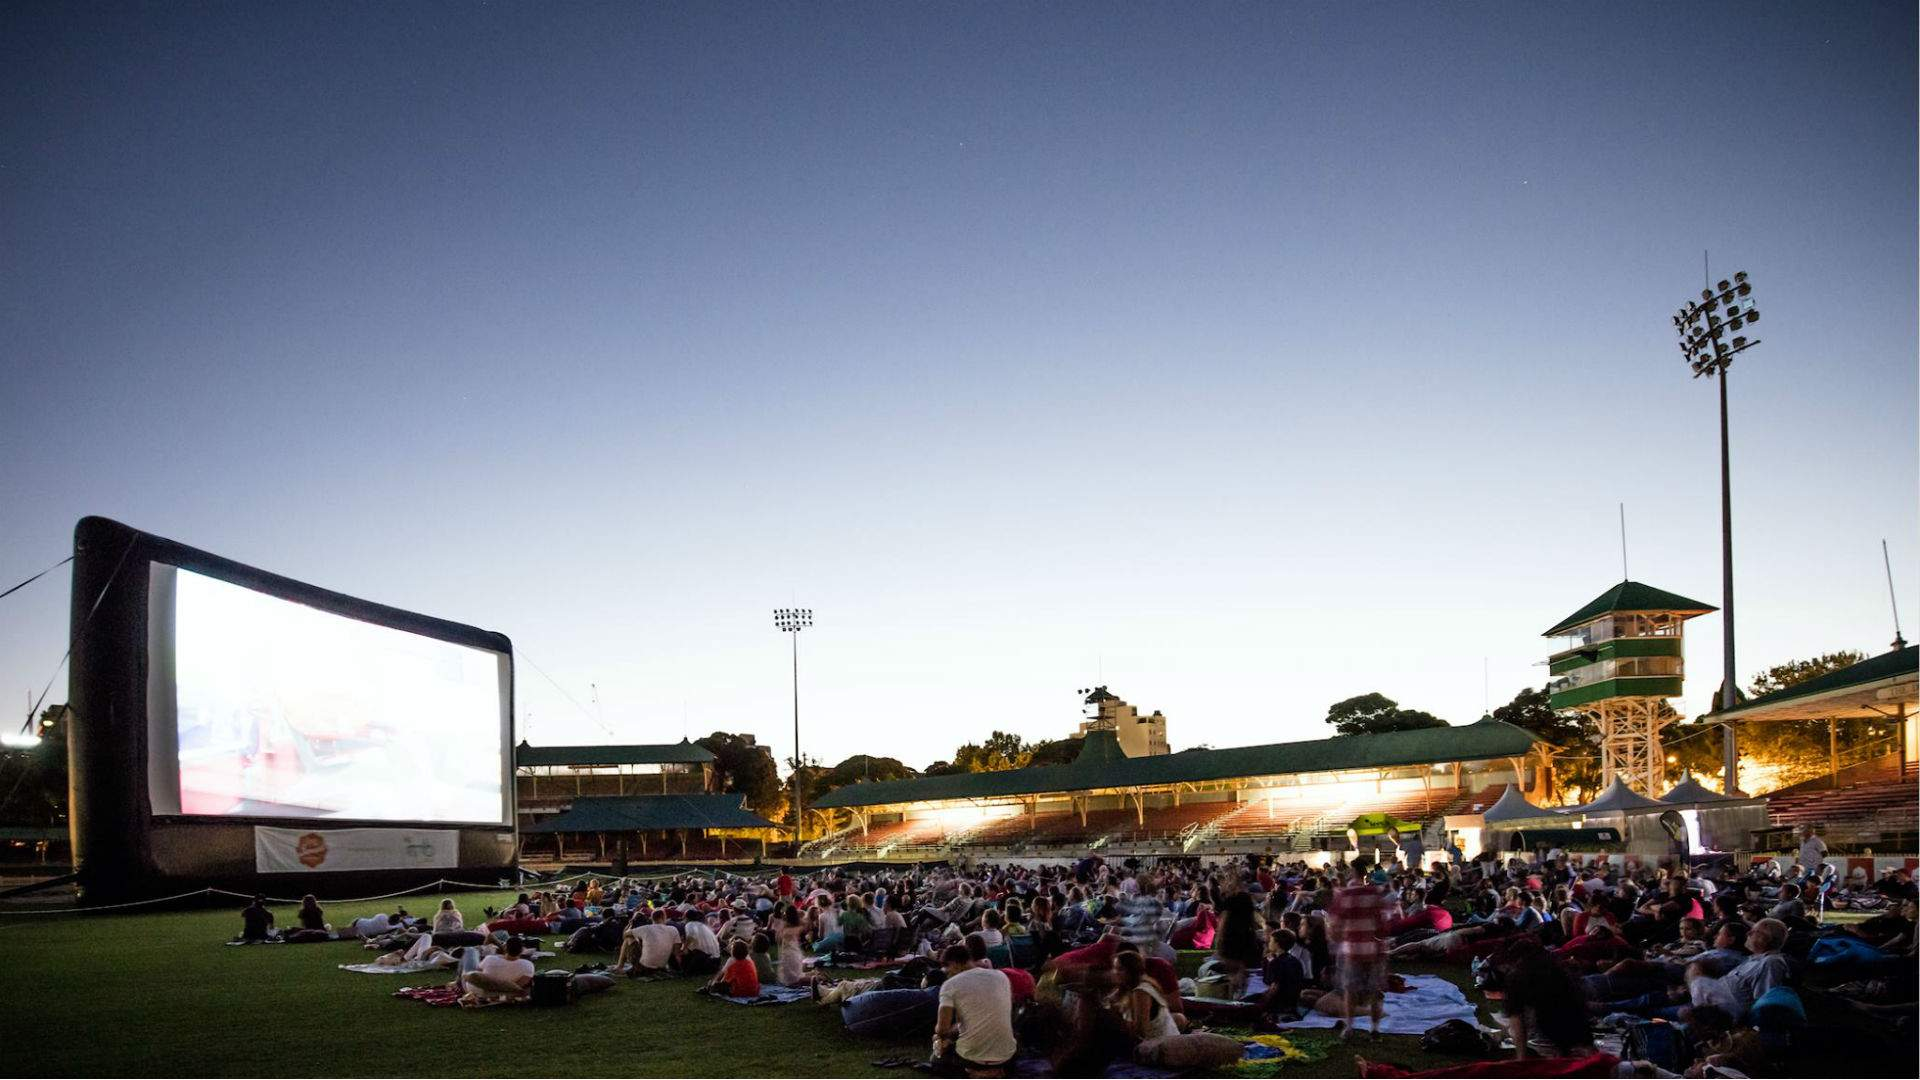 Sunset Cinema North Sydney 2020